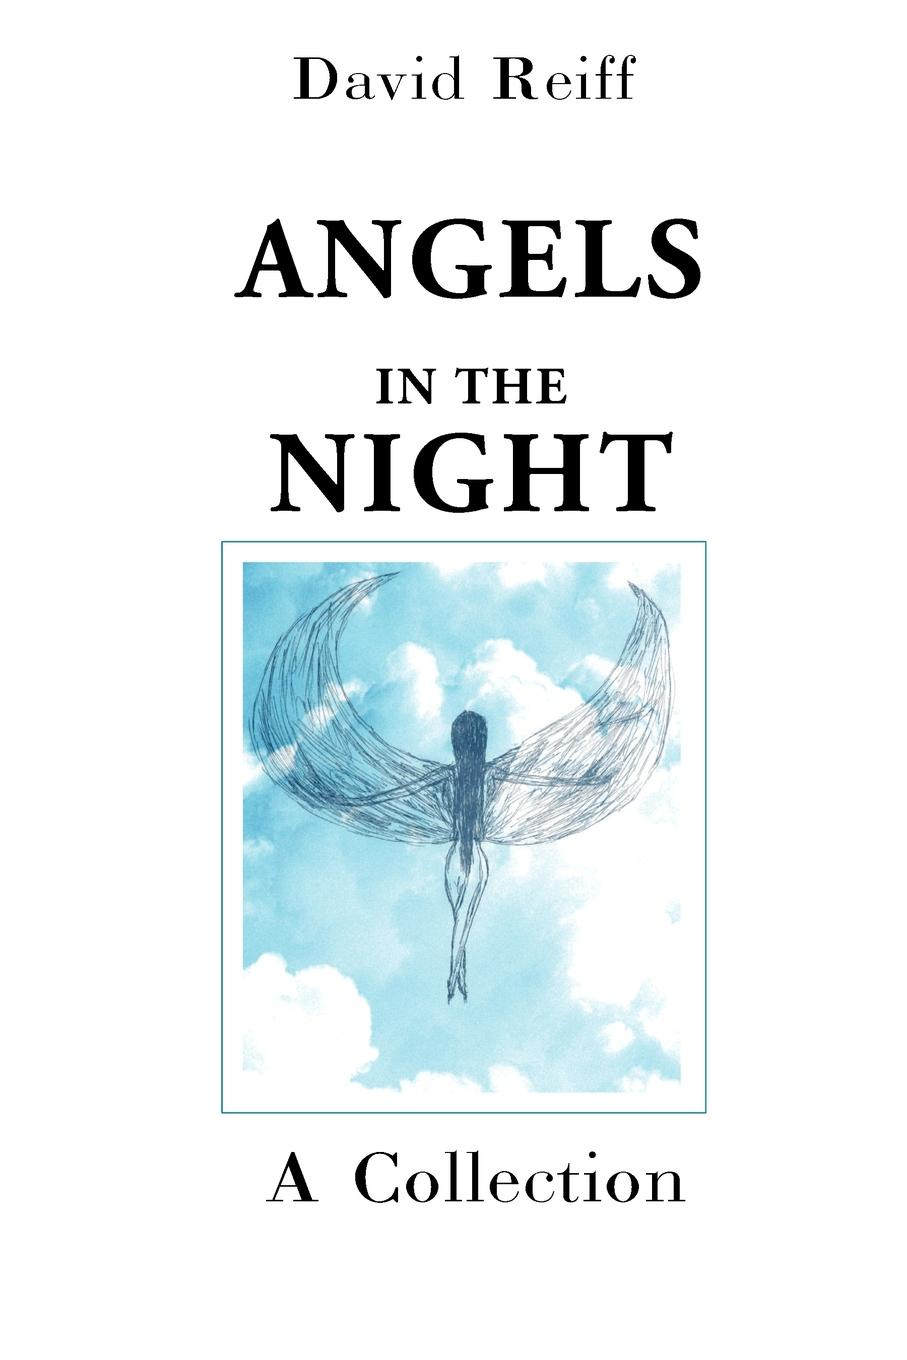 Angels in the Night. A Collection. David Reiff